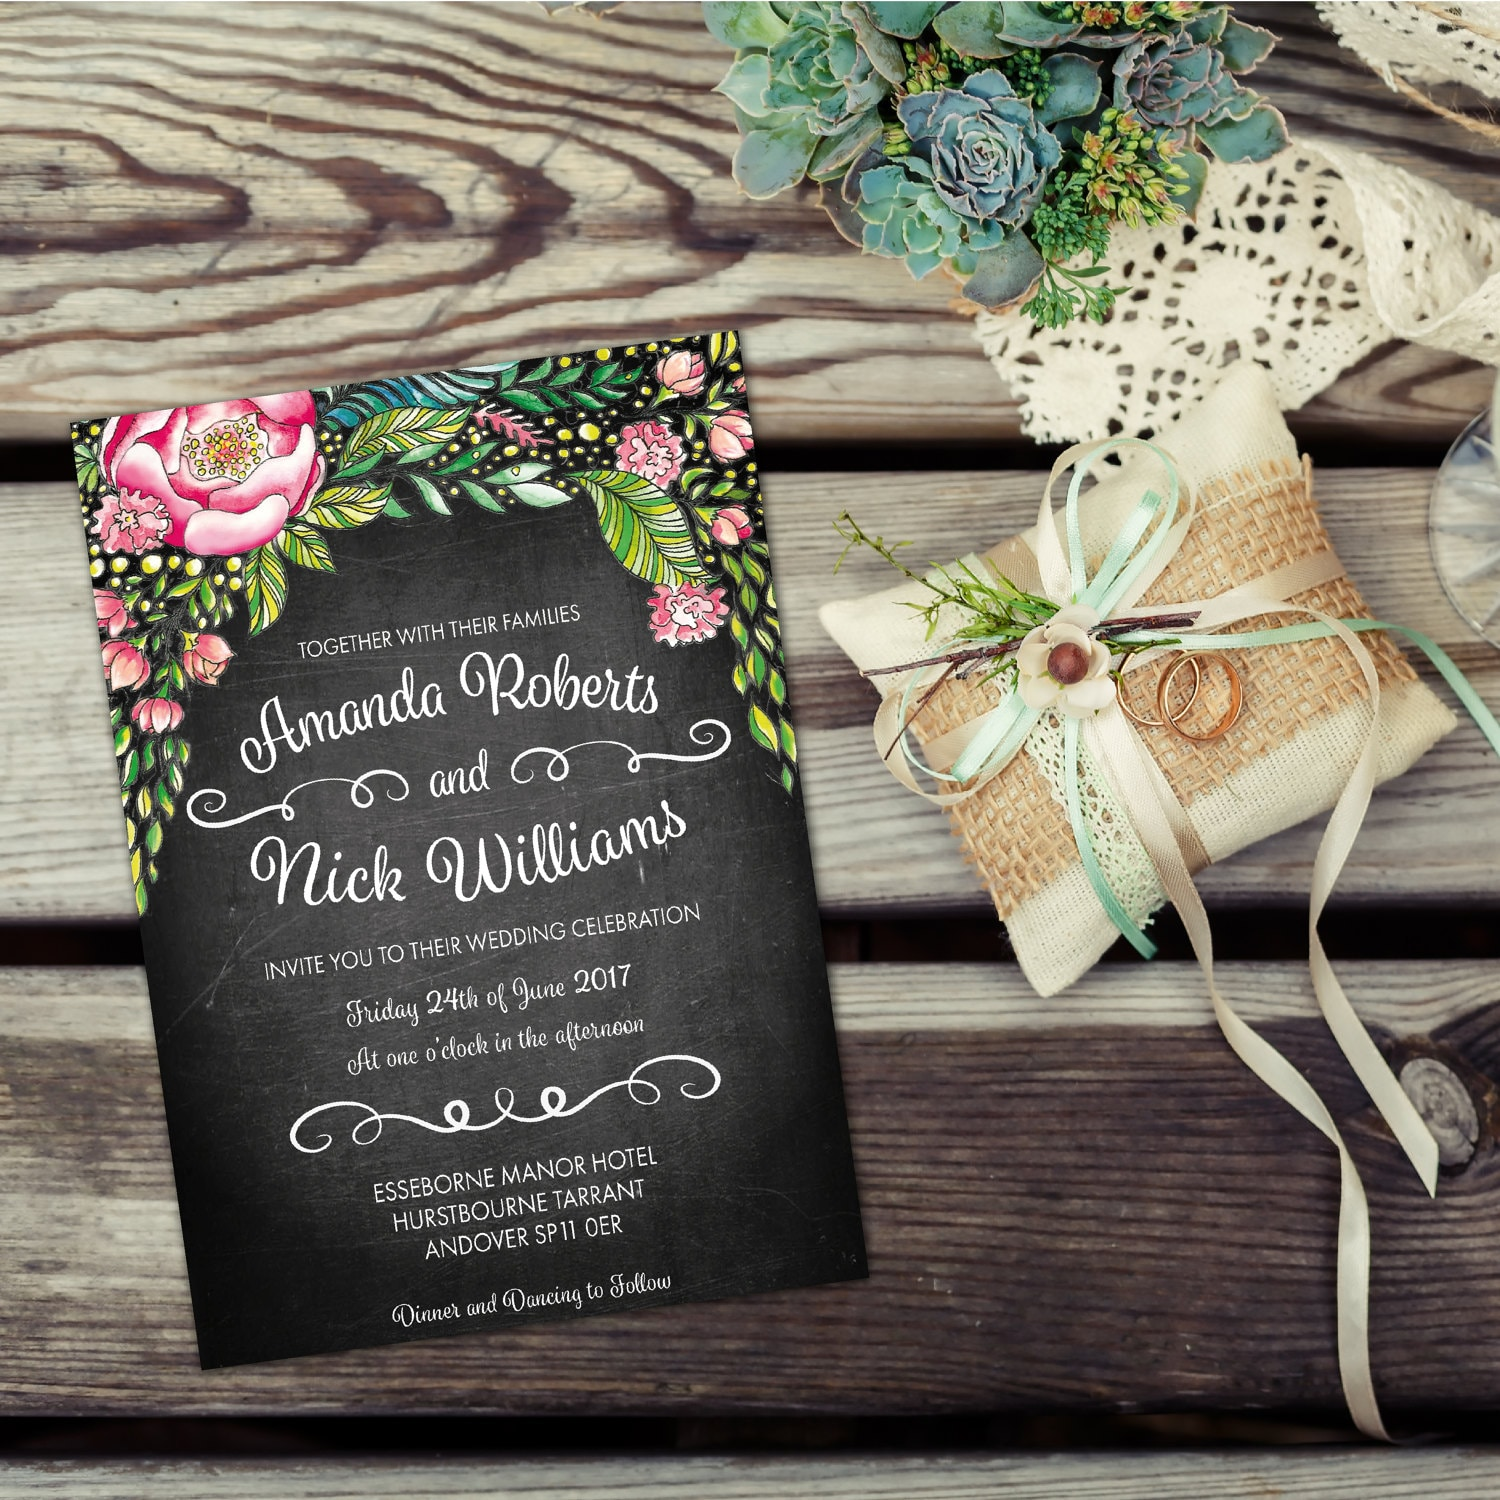 Vintage wedding invitations kits